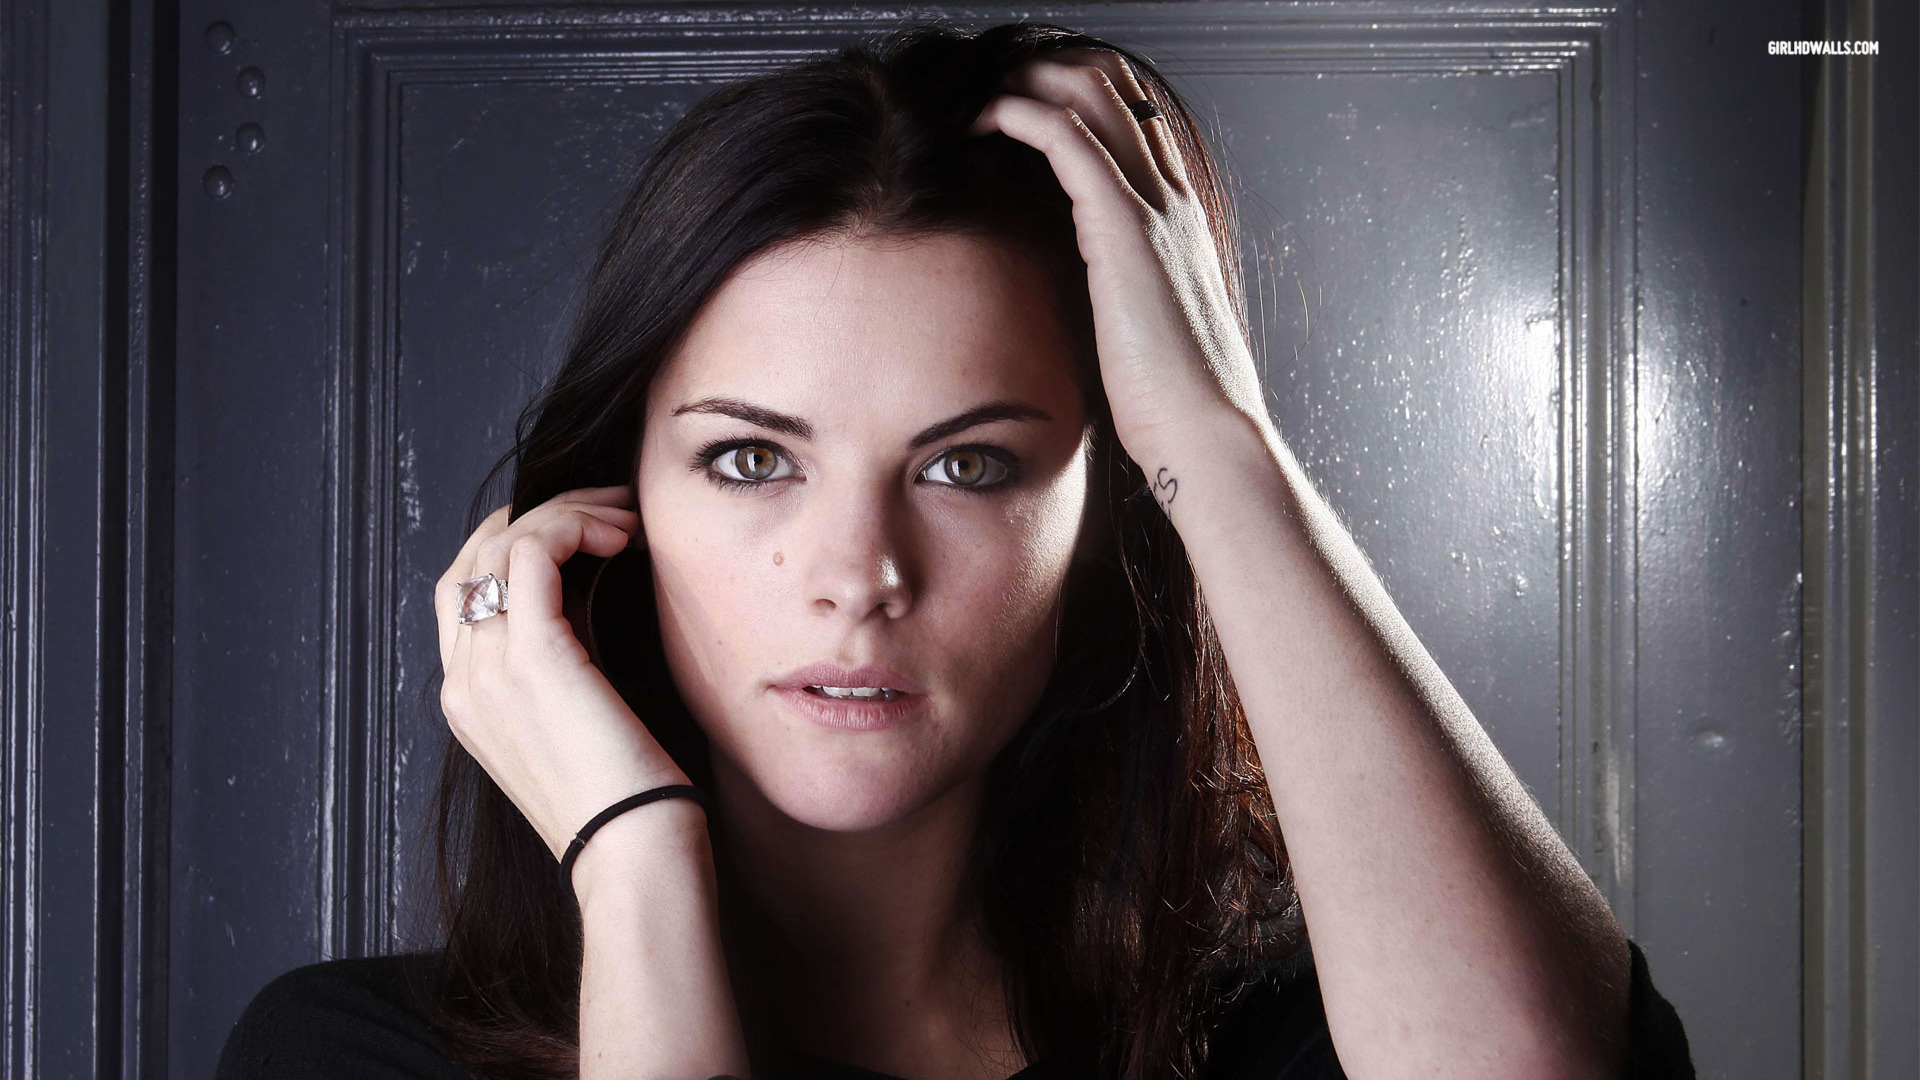 Jaimie Alexander free wallpapers hd